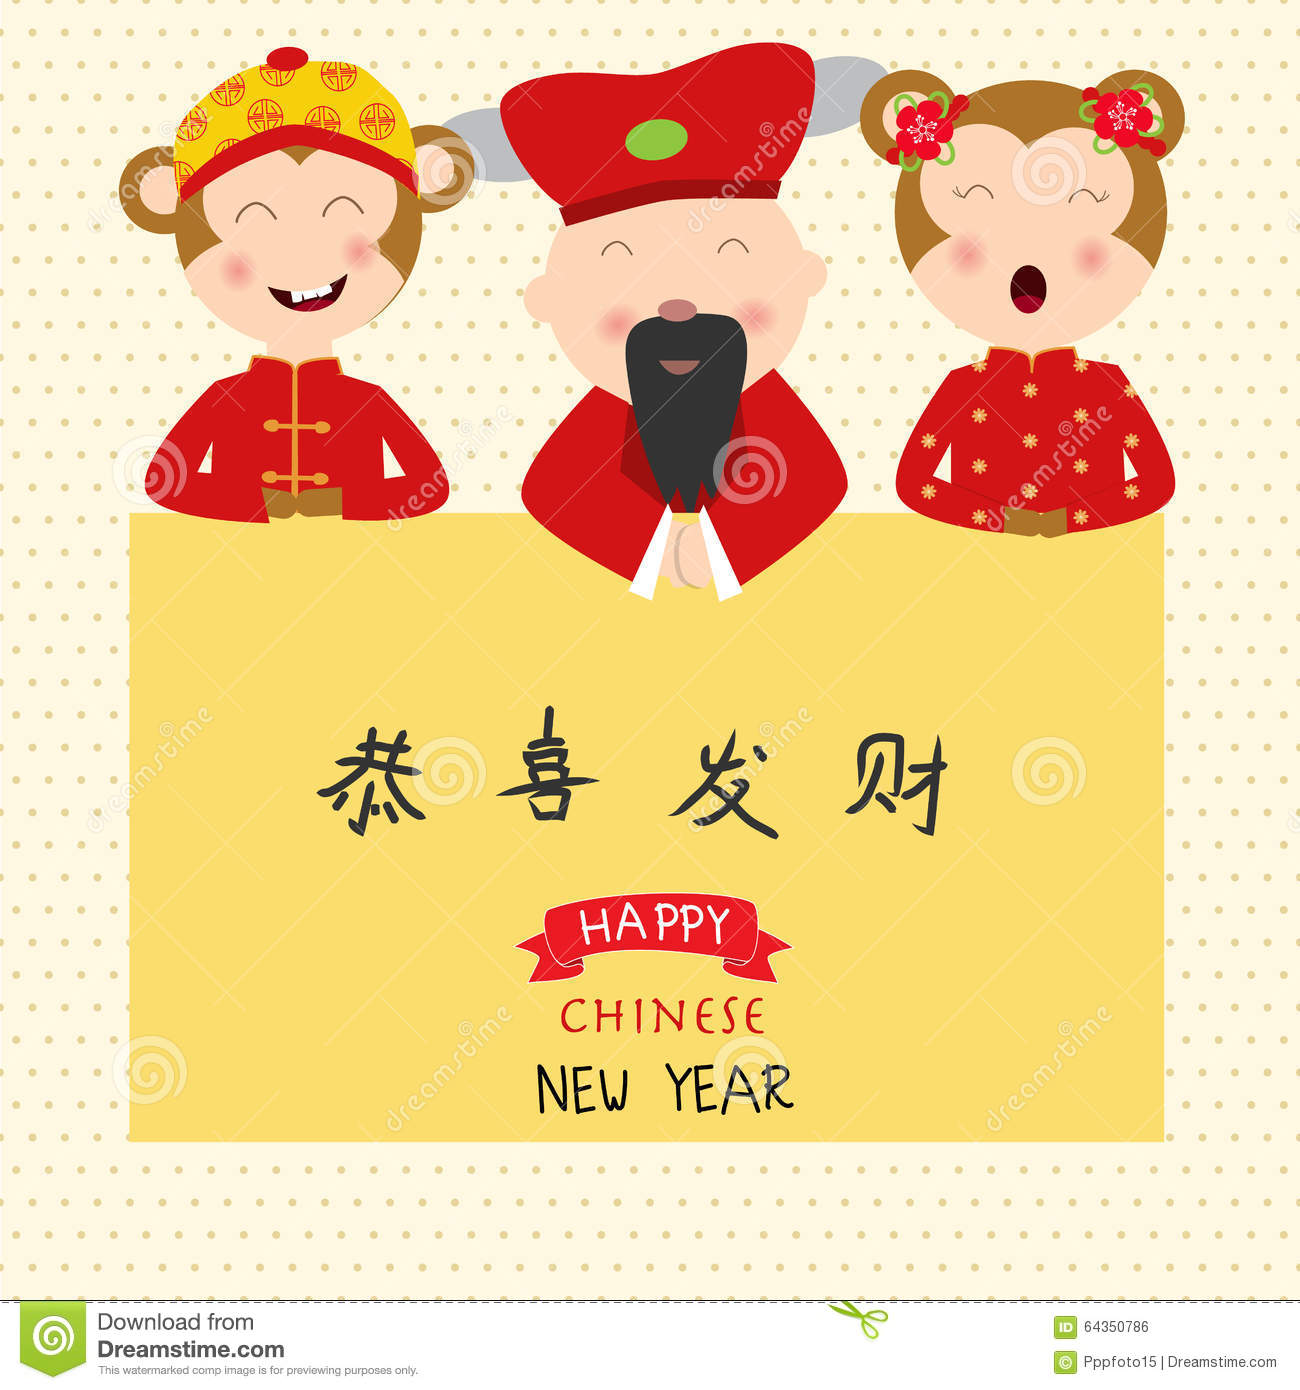 Happy Chinese New Year 2016 With Kids In Chinese Costume Vector Stock ...